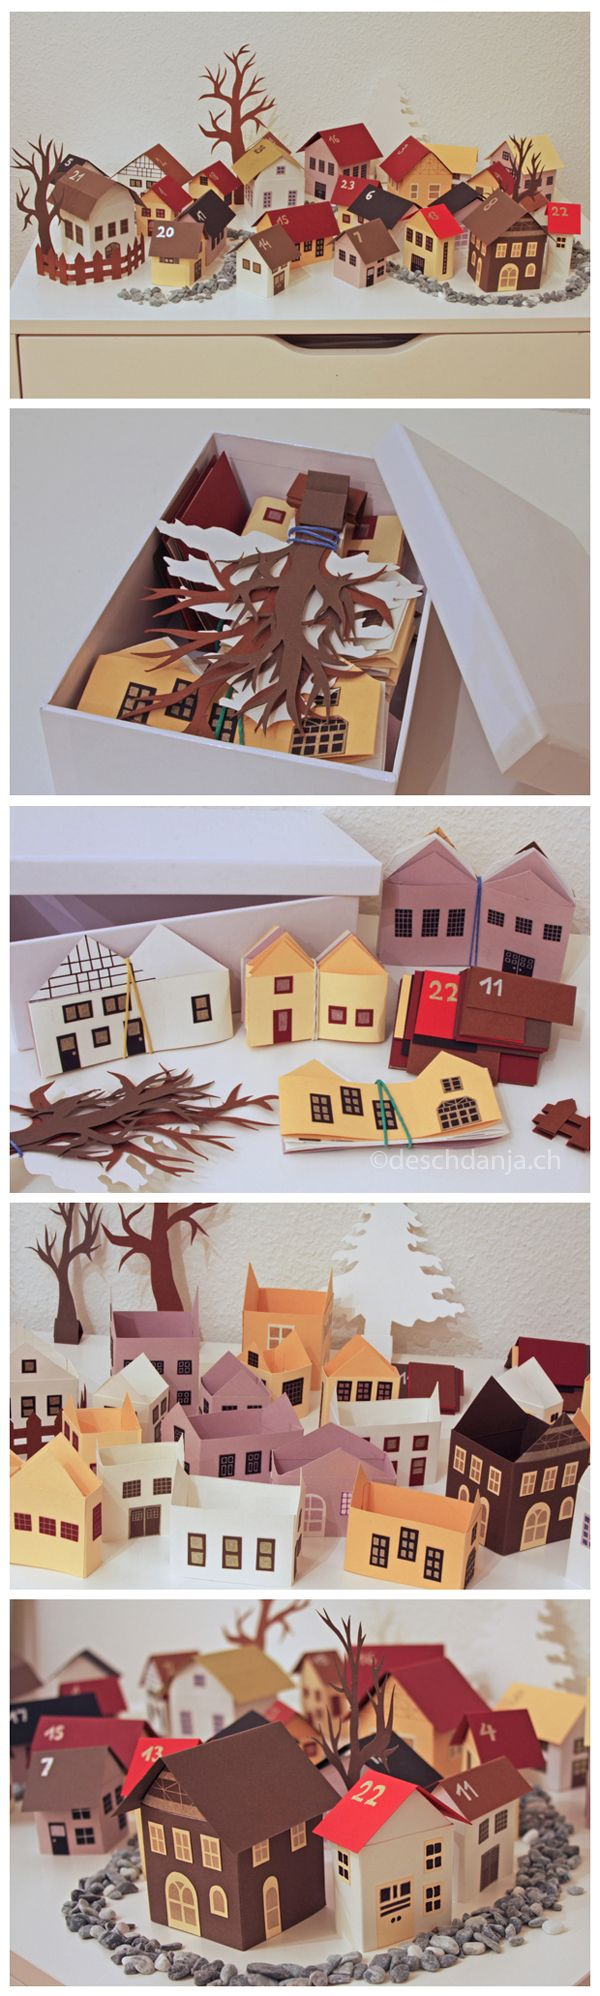 24 little houses made out of paper Advent Calendar